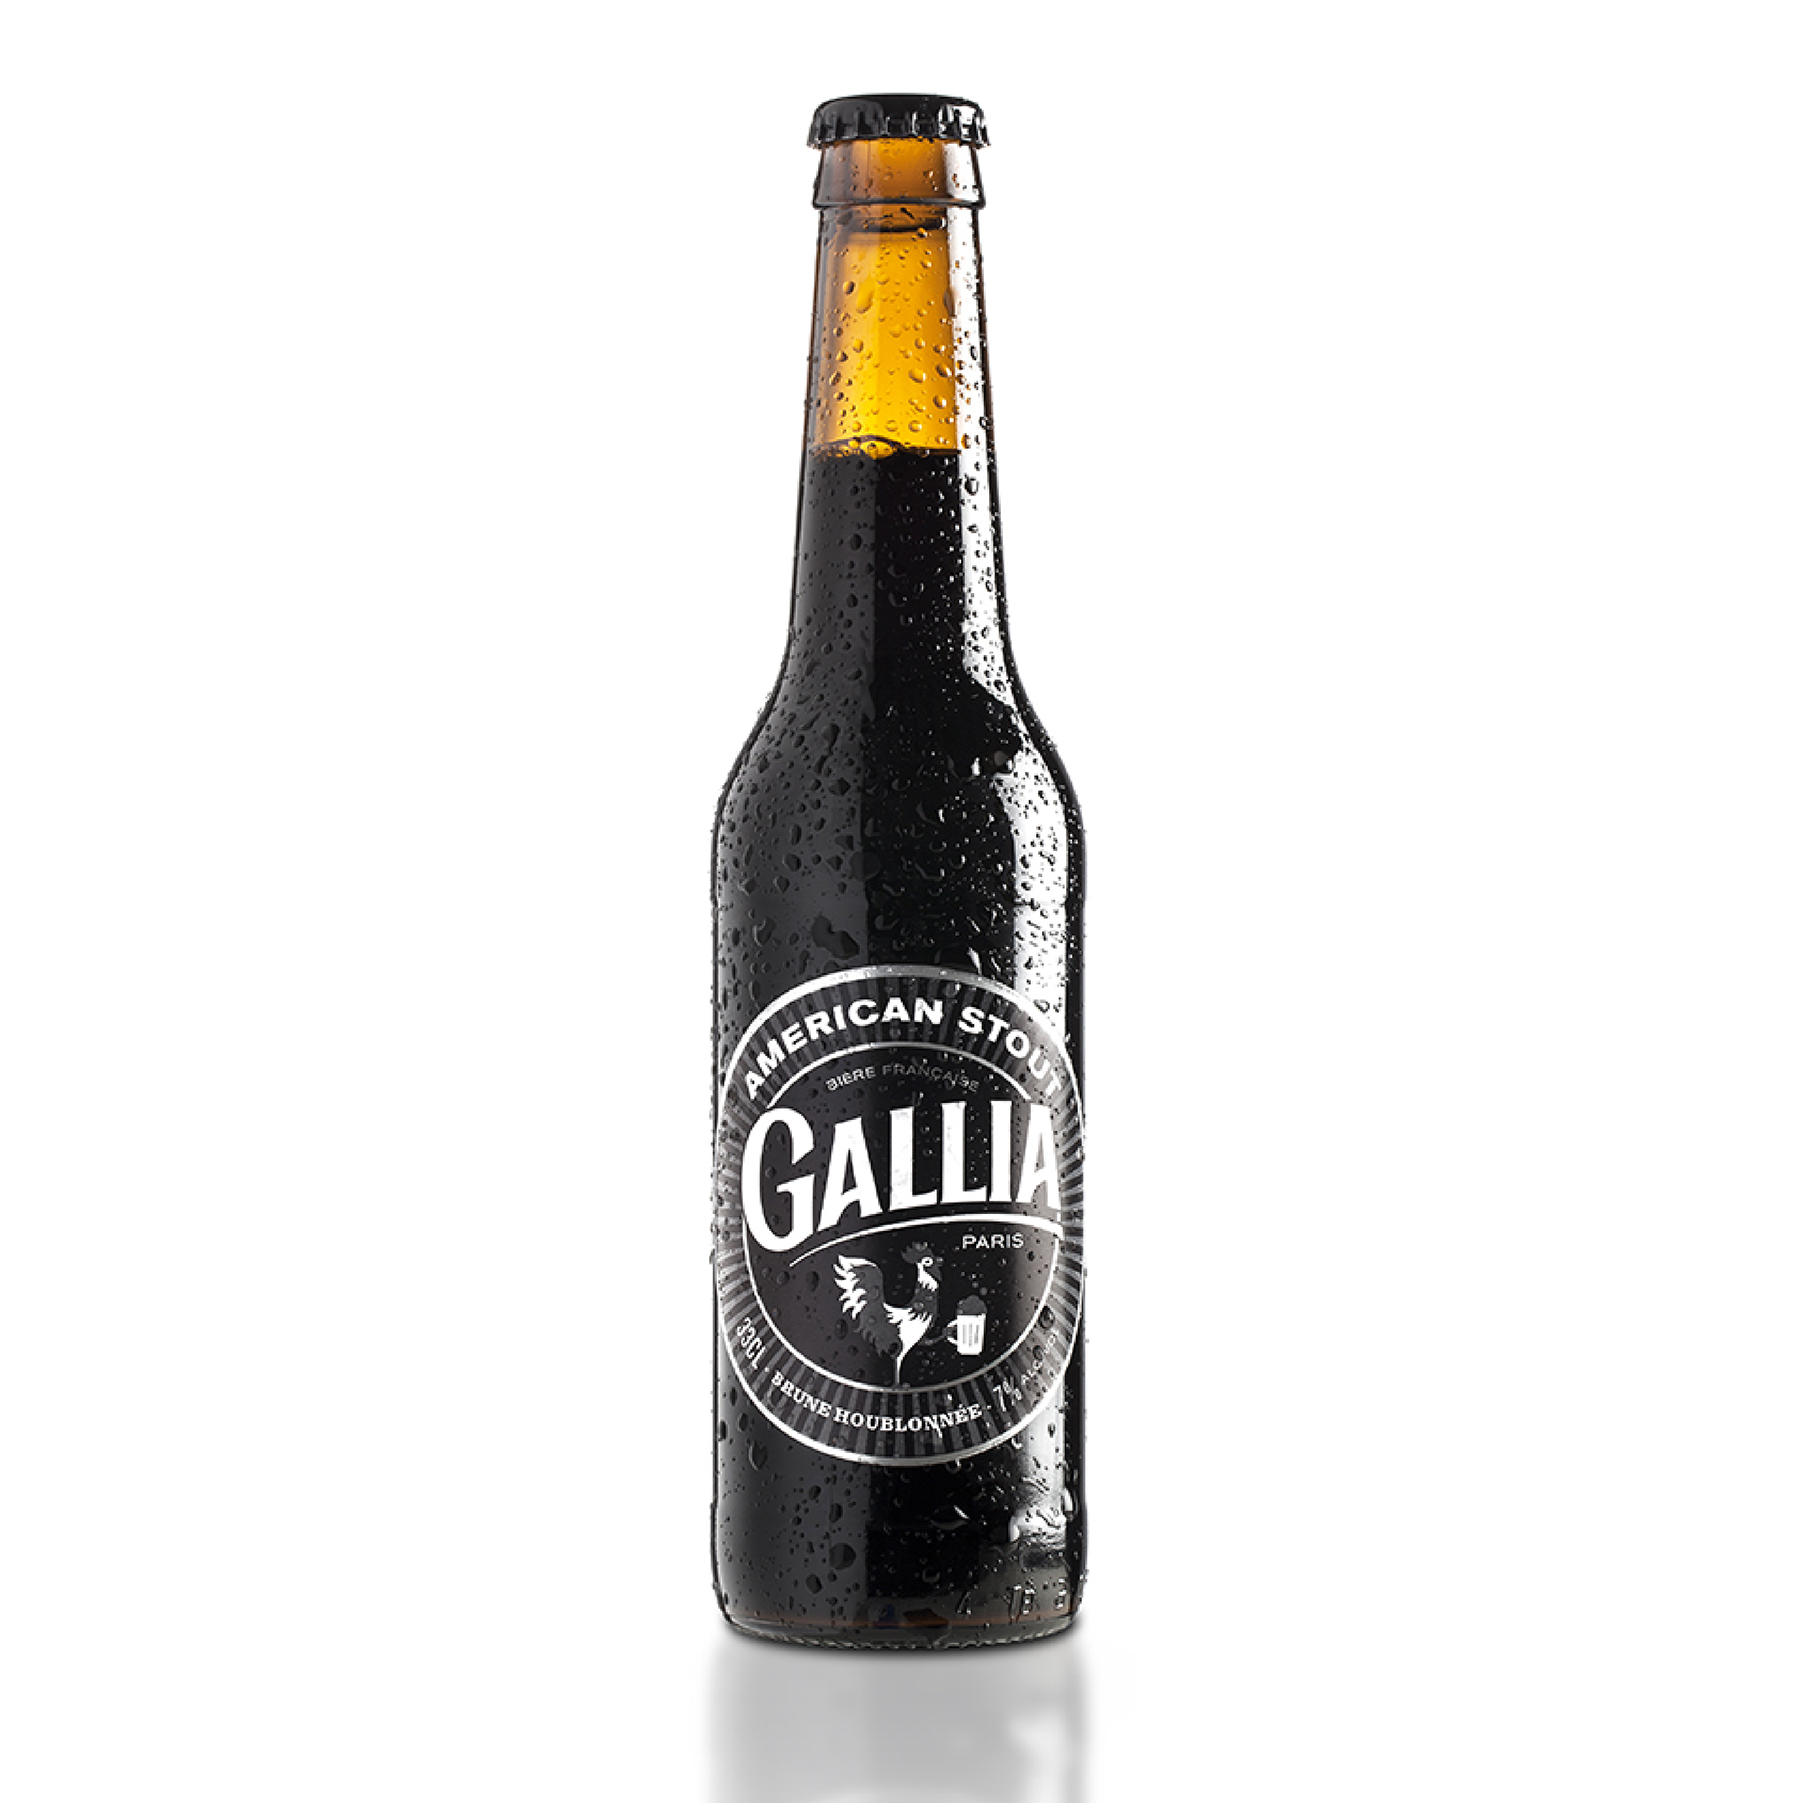 Gallia Stout